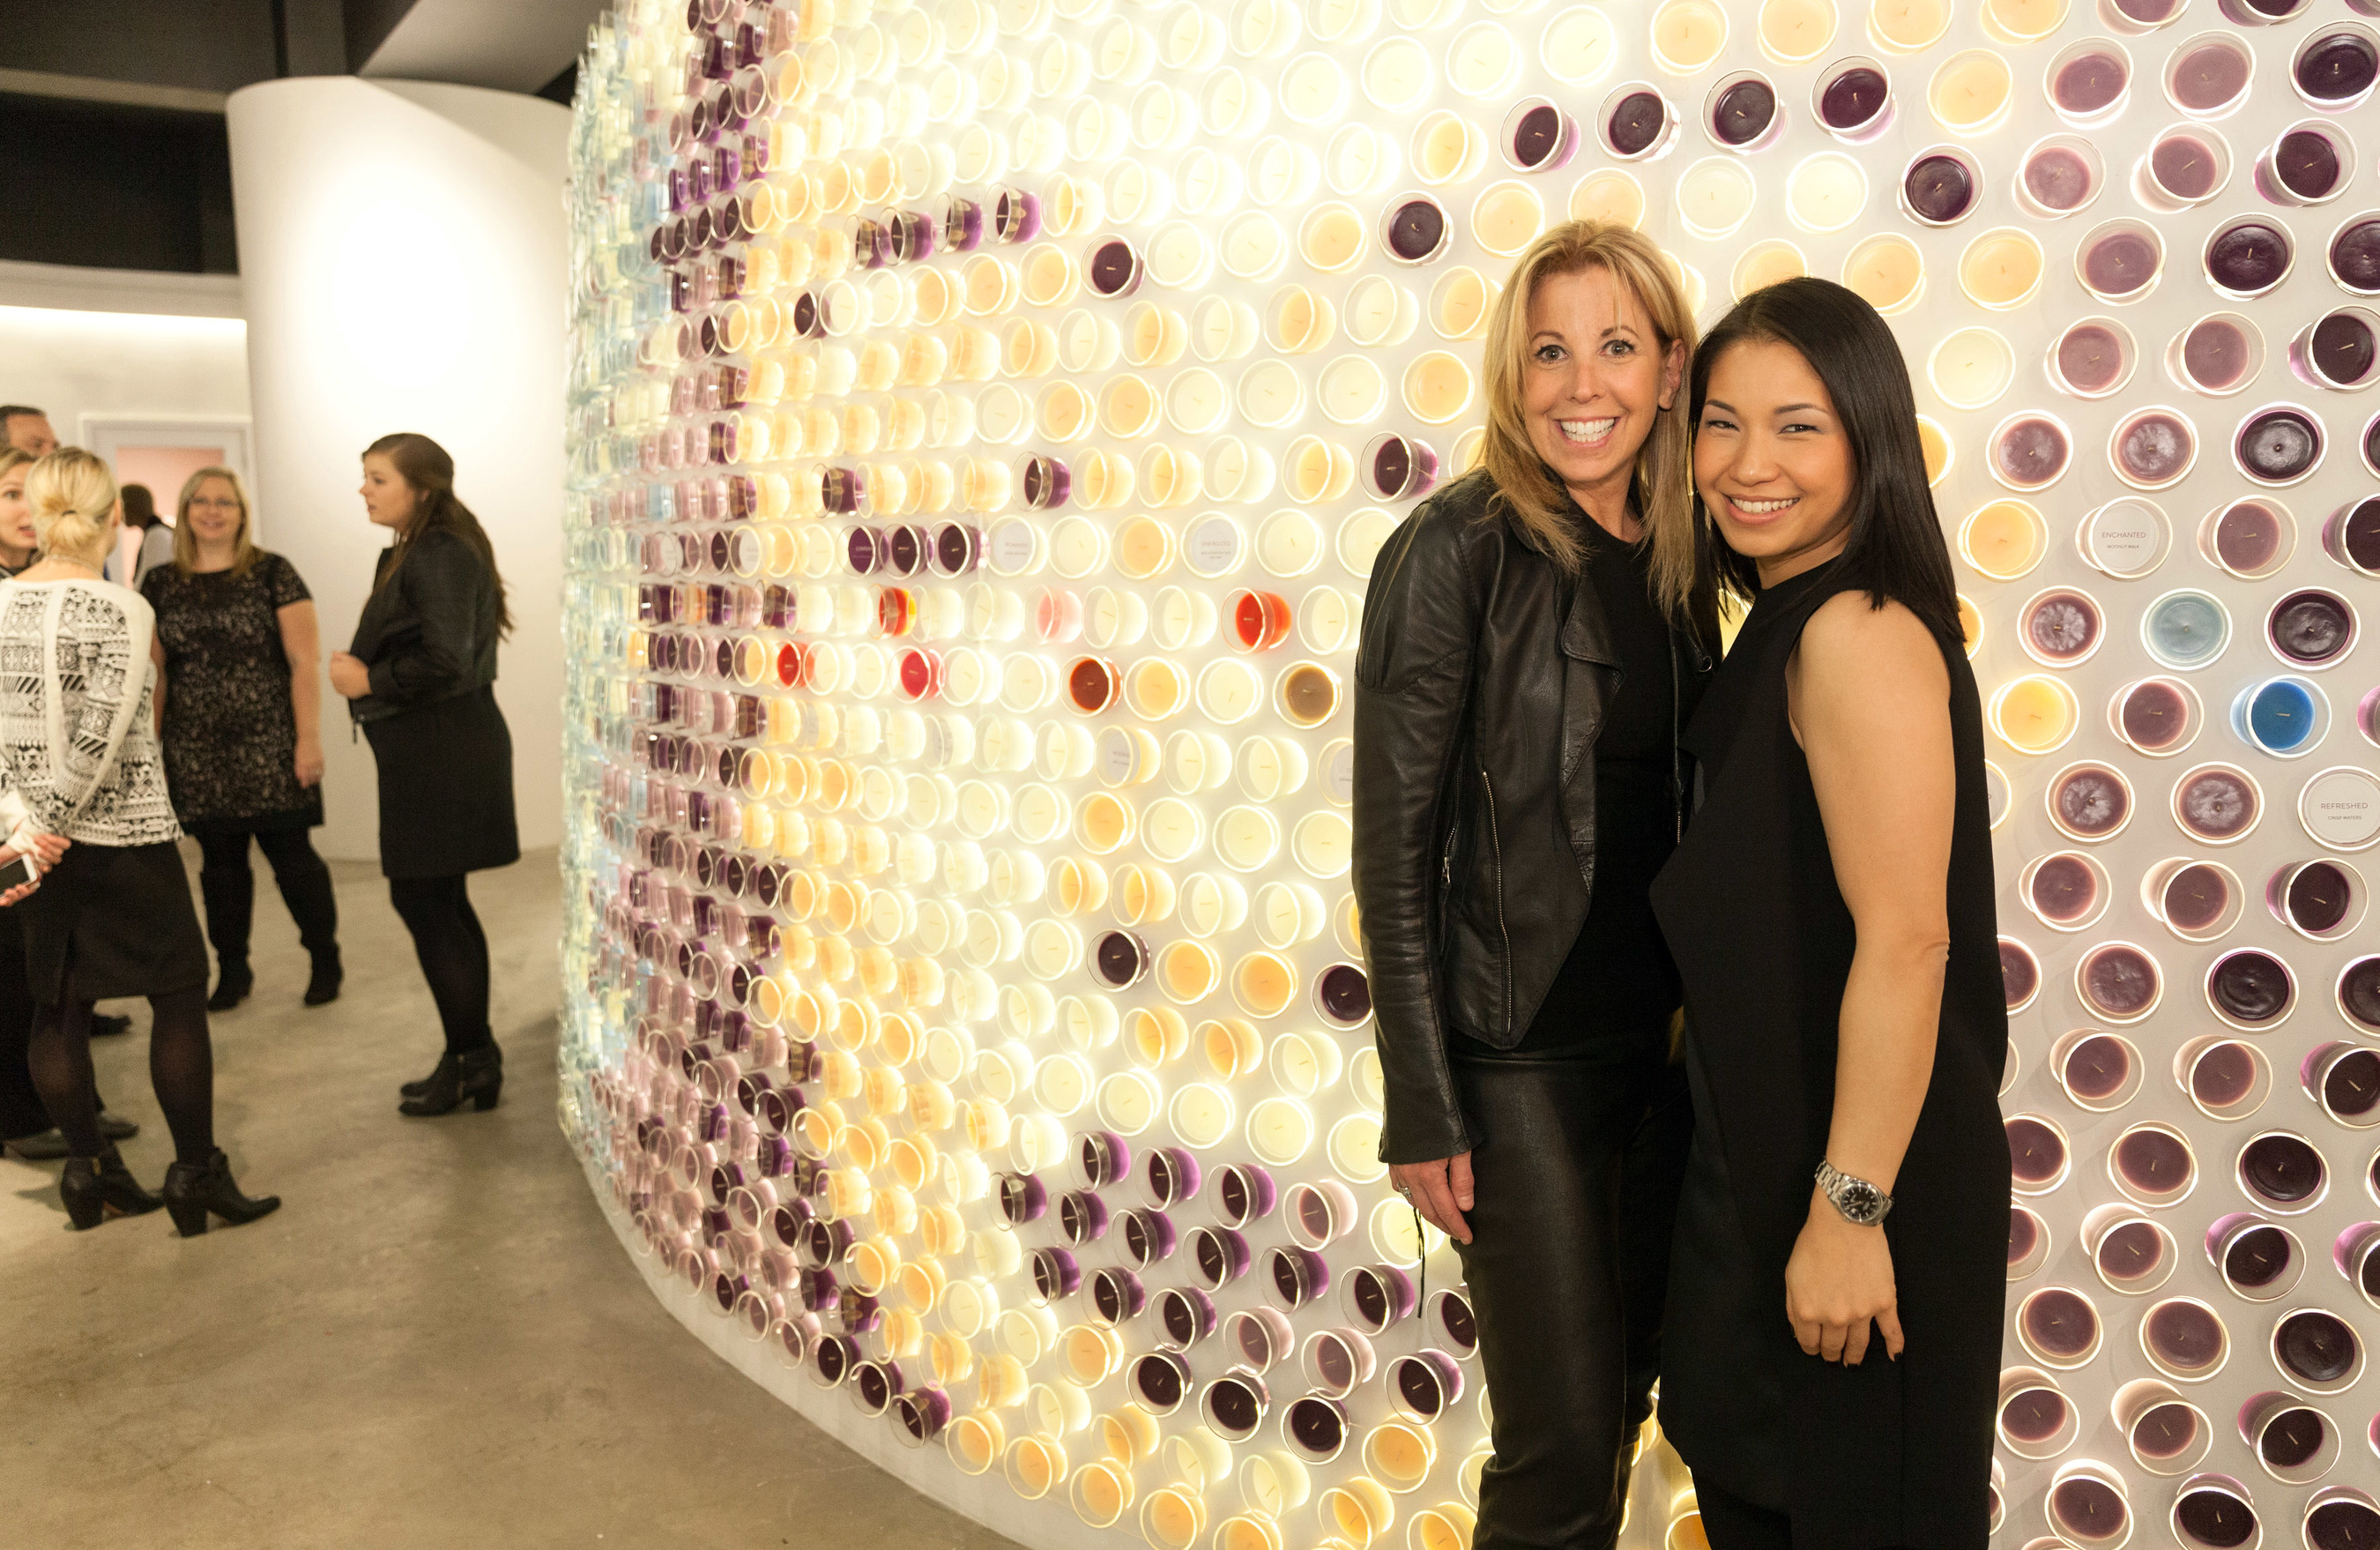 Celebrity fashion designer Pamela Dennis, left, and New York-based designer and architect Stephanie Goto celebrate the grand opening of the Glade(R) Boutique in front of Goto's scent-inspired creation compiled of nearly 1,500 candles in 18 Glade(R) scents Monday, Nov. 17, 2014 in New York.